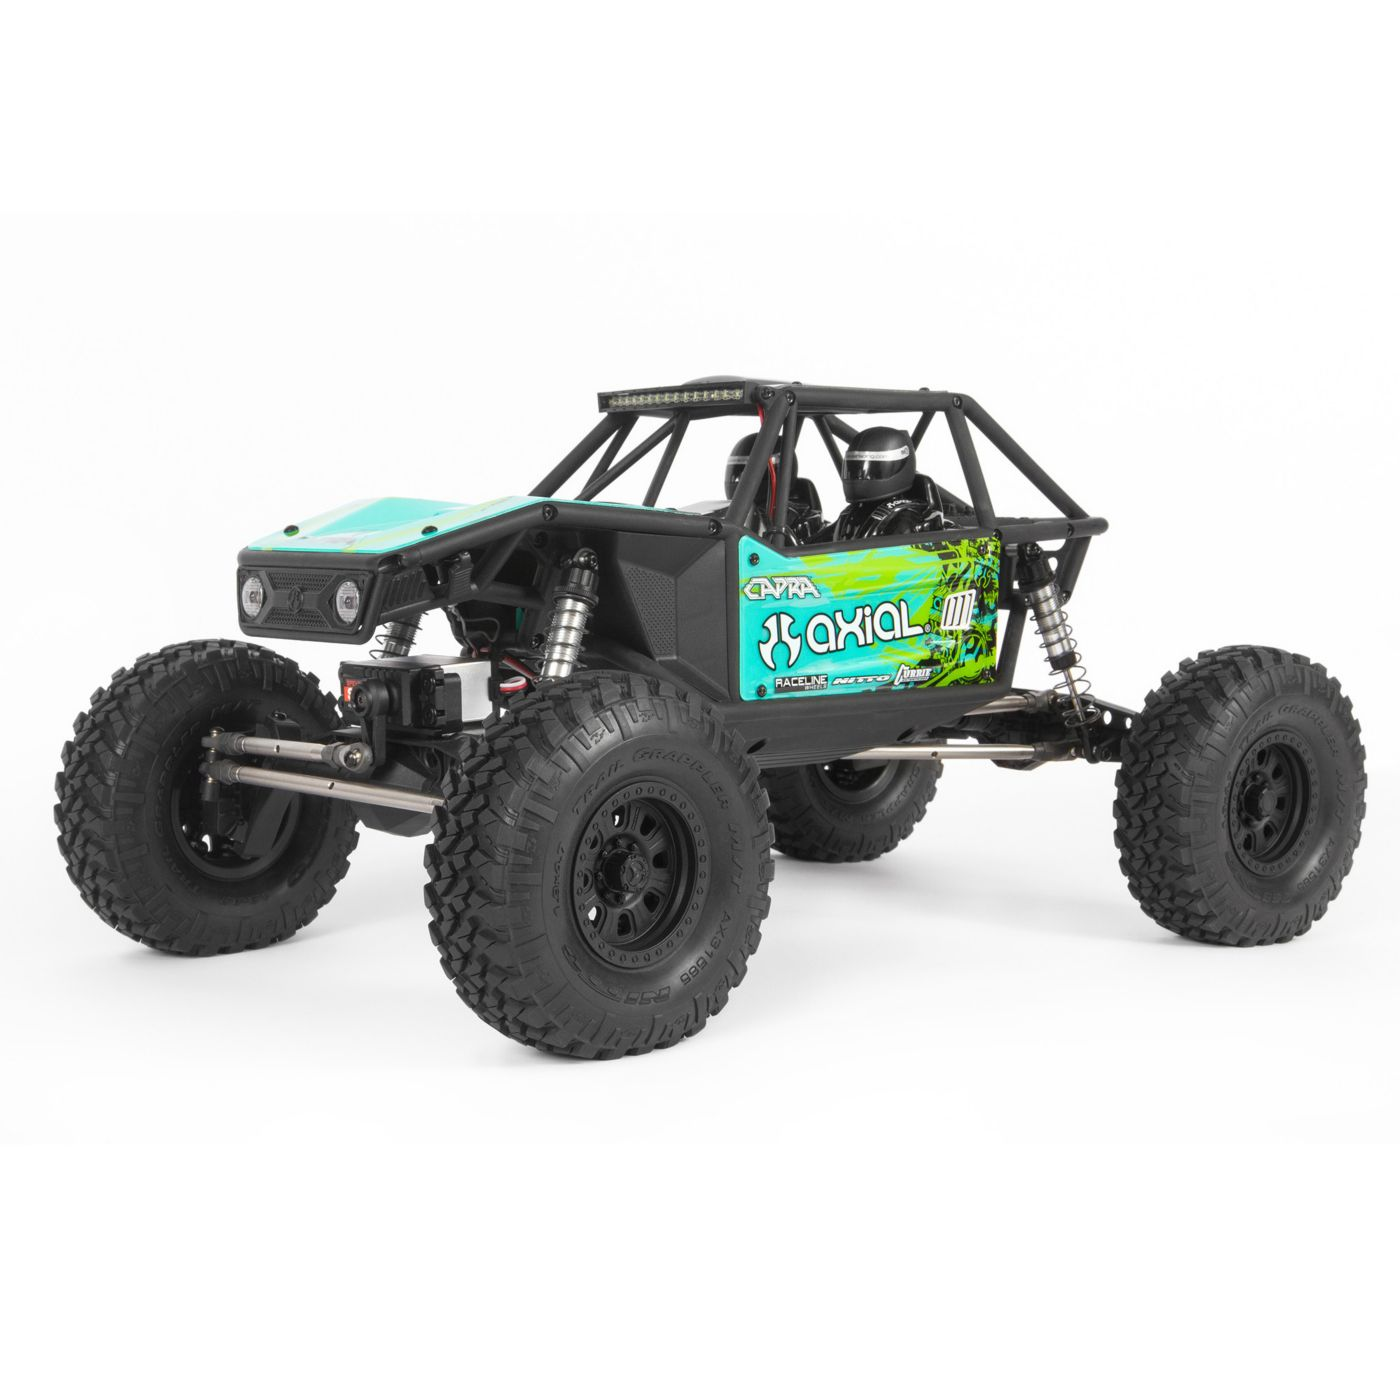 "Axial Racing 1/10 Capra 1.9 Unlimited 4WD RTR Trail Buggy, Green - <font color=""red""><b>FREE BATTERY PROMO</b></font>"